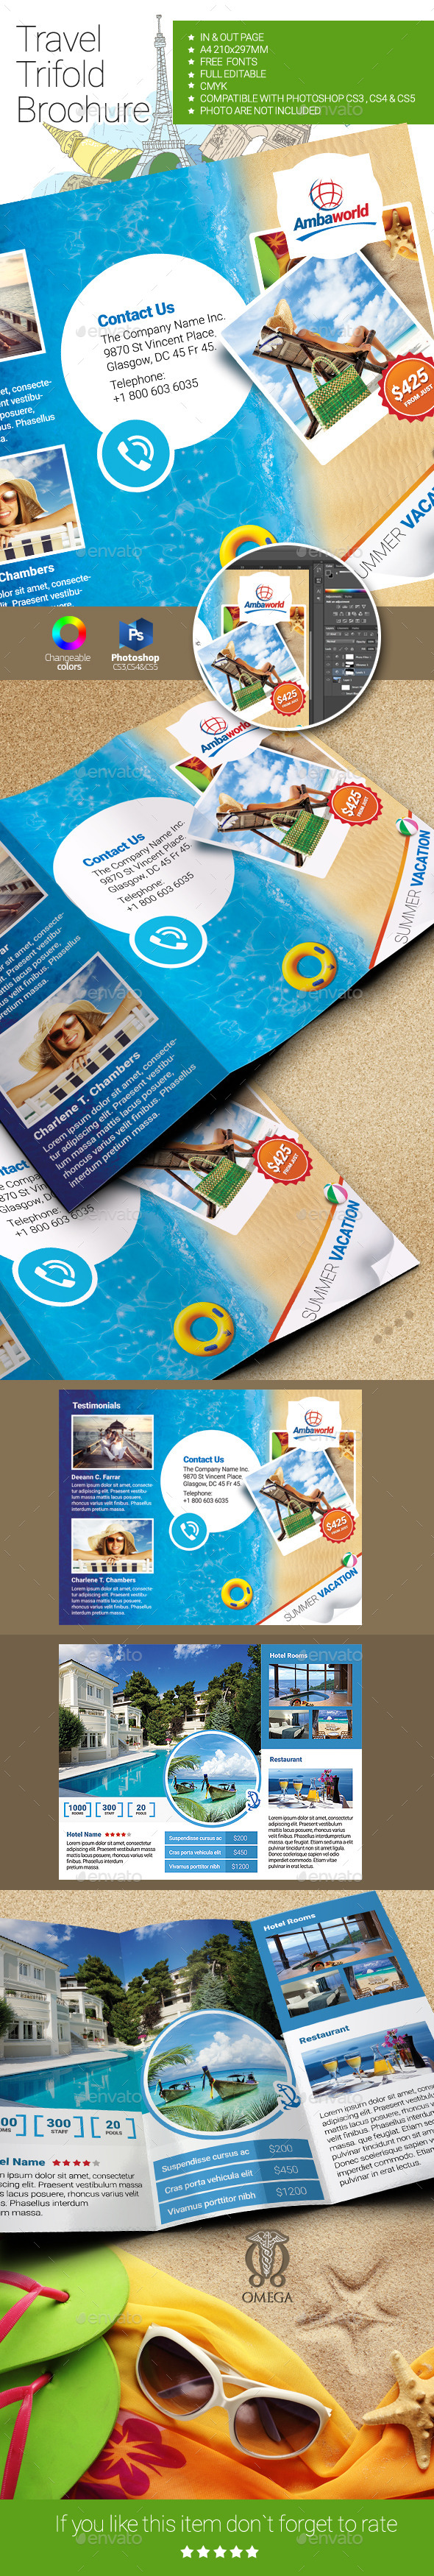 GraphicRiver Travel Trifold Brochure 10810346